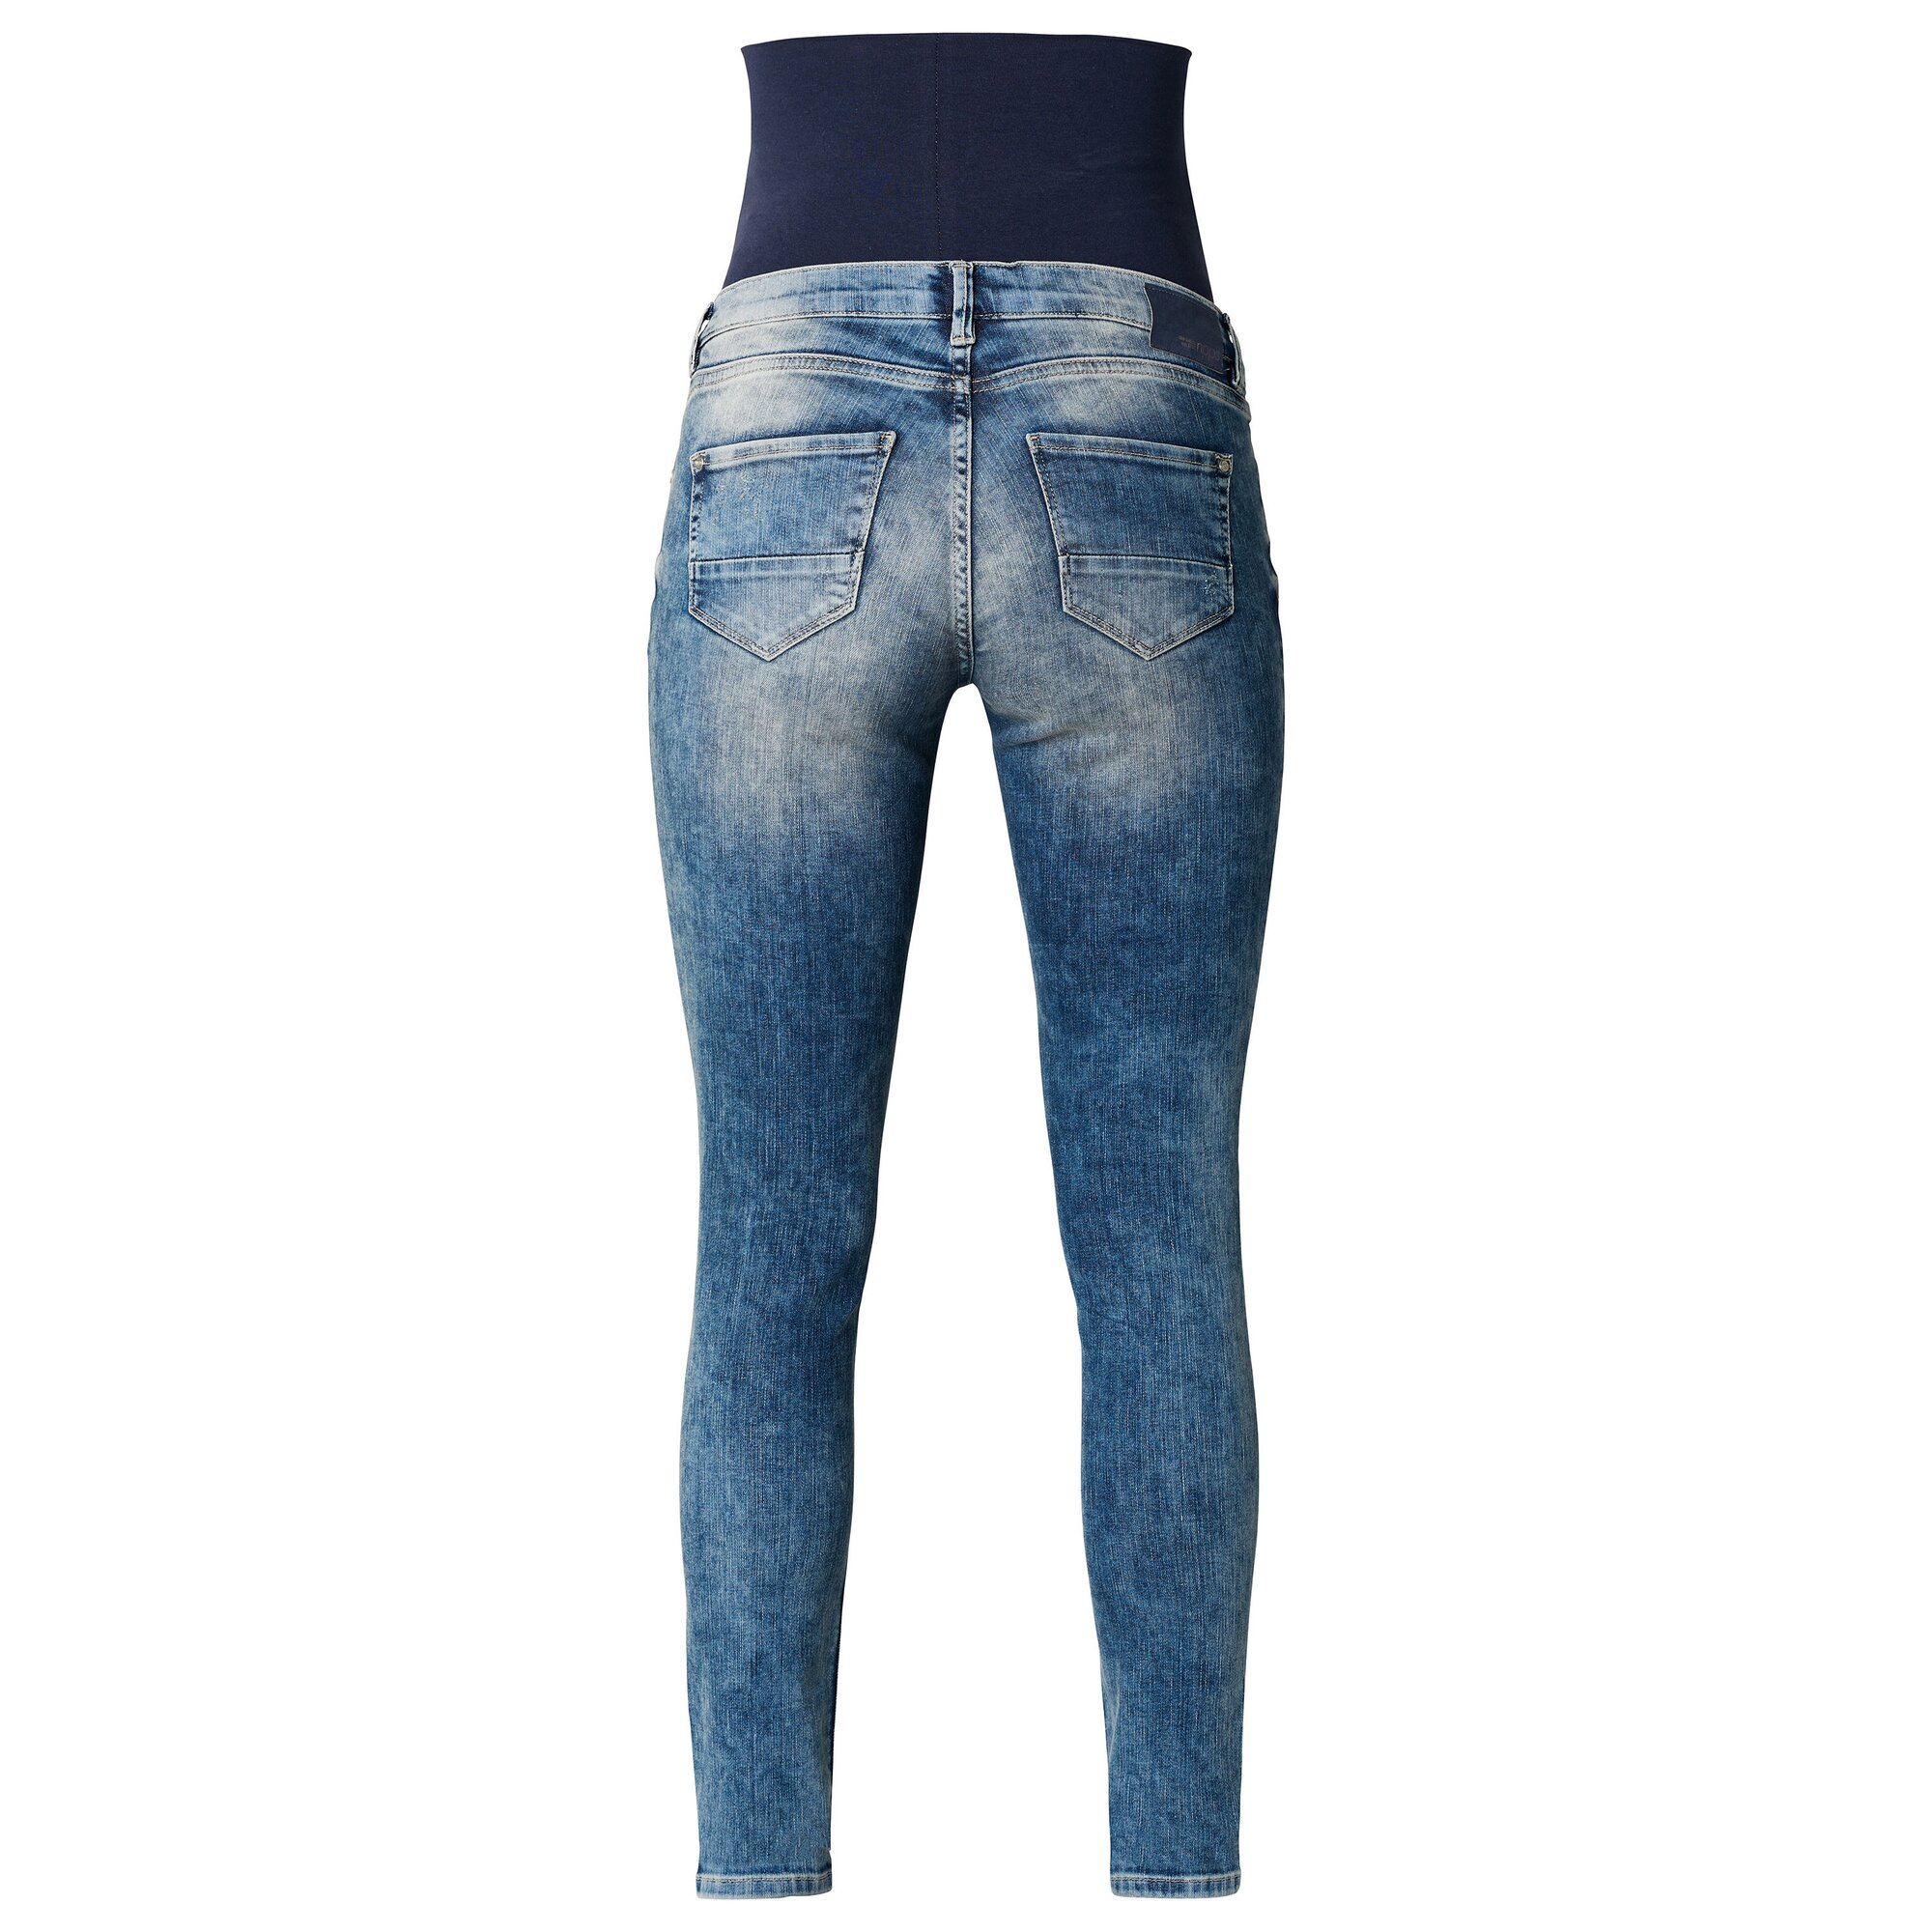 noppies-skinny-umstandsjeans-stacey